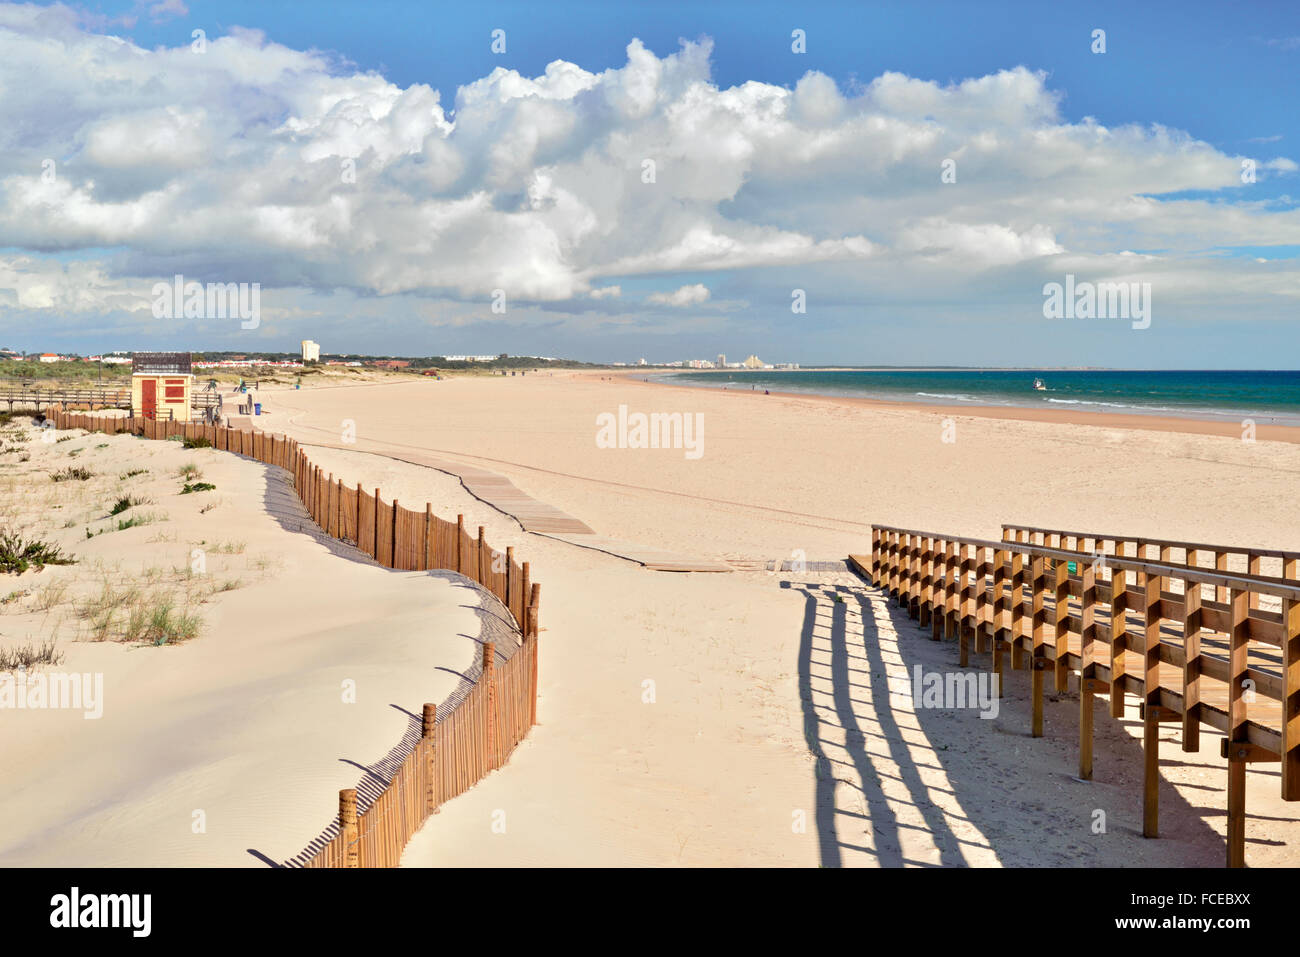 Portugal, Algarve: Wide sand beach without people in Manta Rota - Stock Image